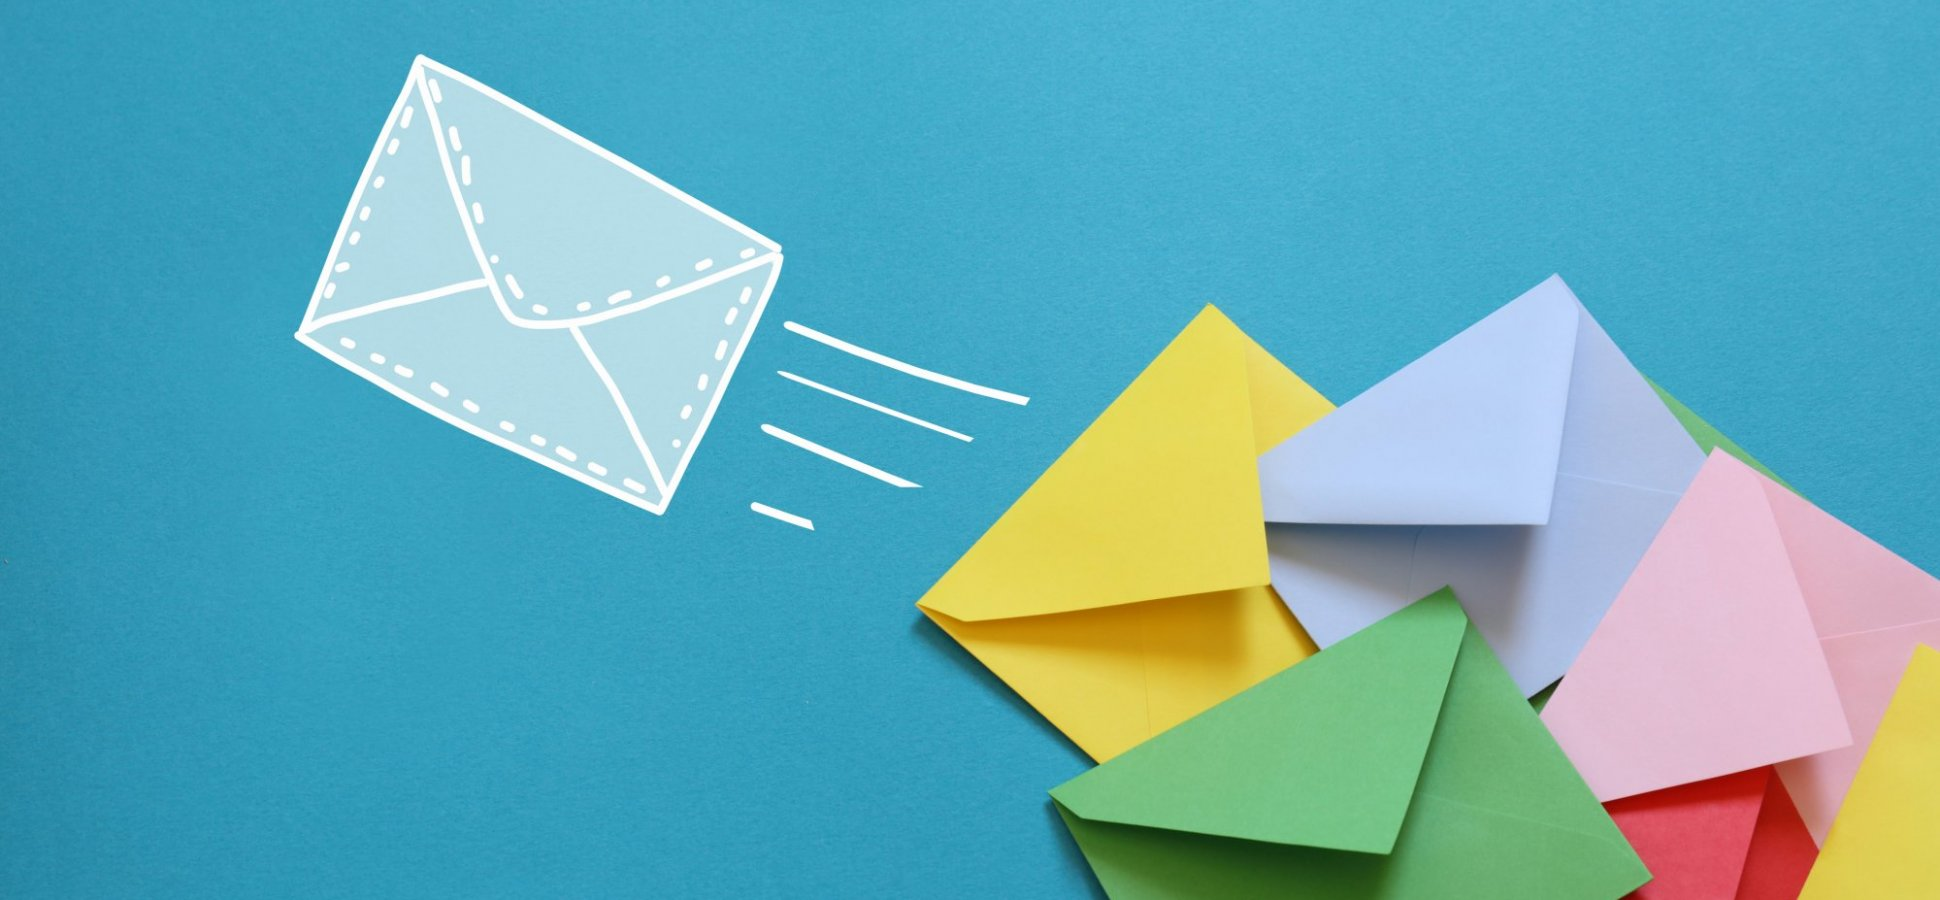 6 Clever Ways to Grow Your Email Newsletter Using Social Media